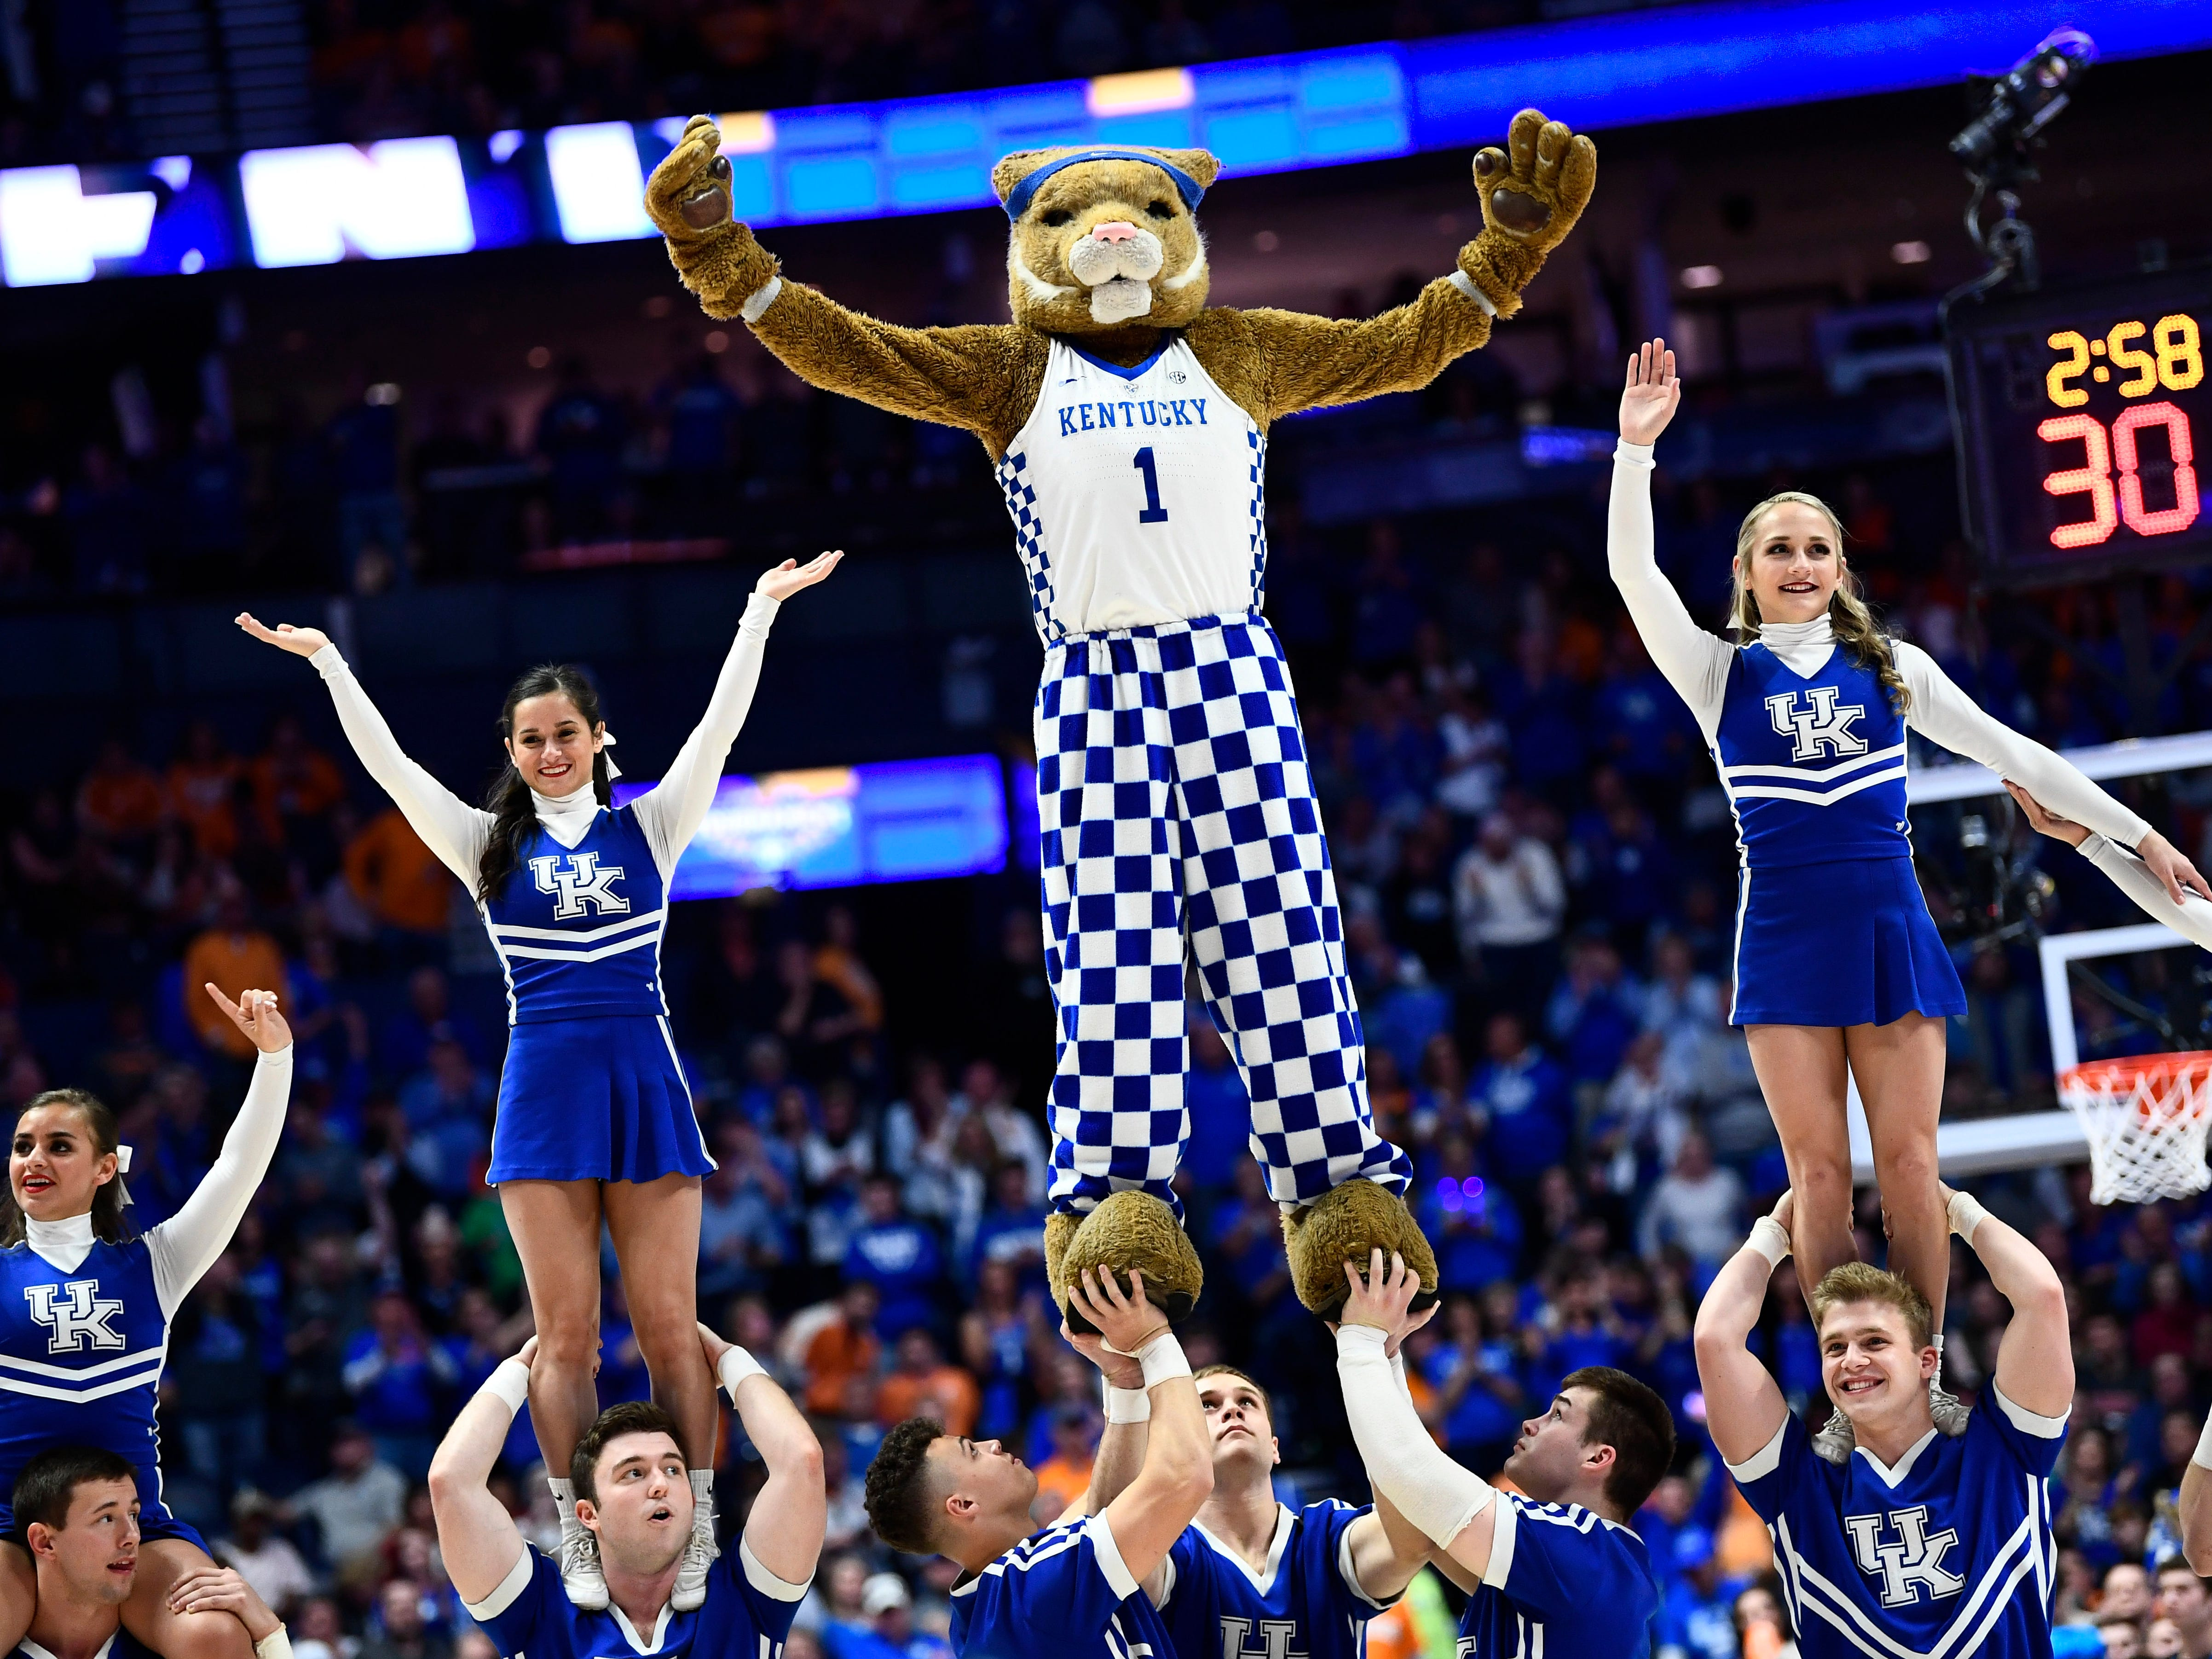 Kentucky cheerleaders lead the fans during the second half of the SEC Men's Basketball Tournament game against Tennessee at Bridgestone Arena in Nashville, Tenn., Saturday, March 16, 2019.